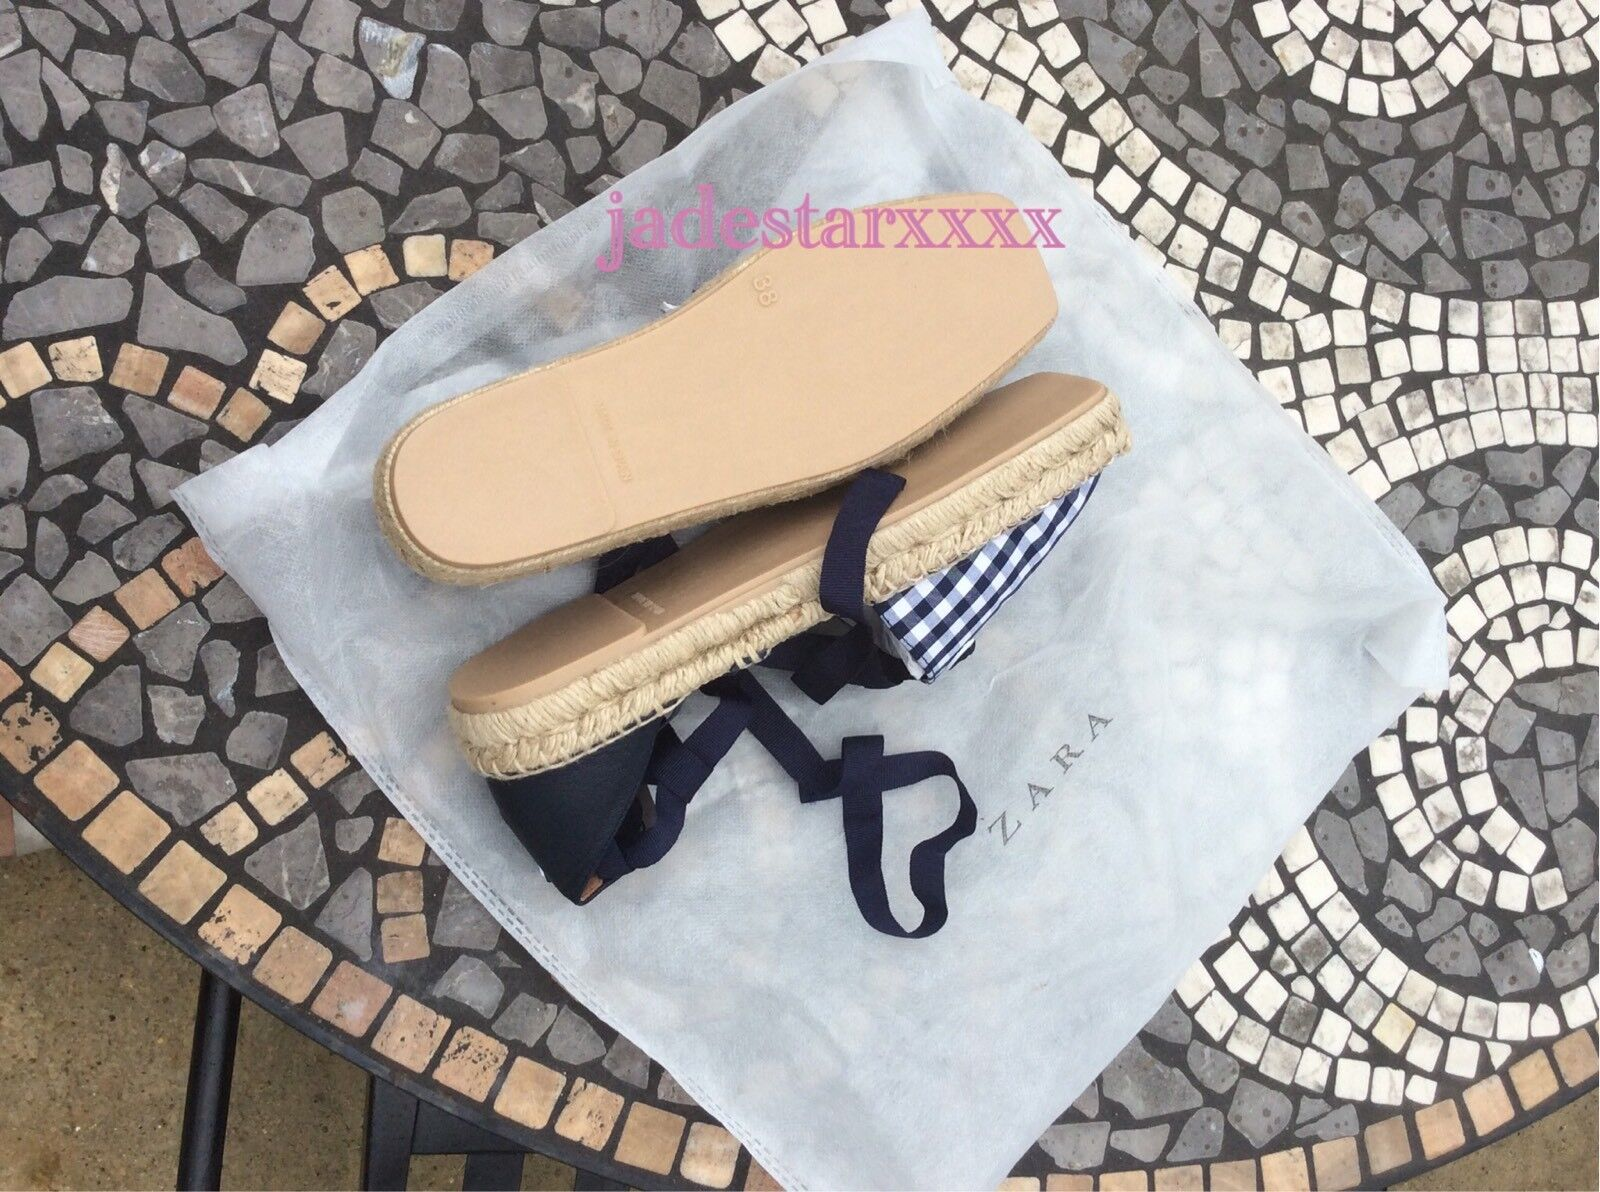 Navy Zara Checked Espadrilles New 5 37 Sandals Lace Up Leather Flats Sandals 37 White BNWT 386b2a